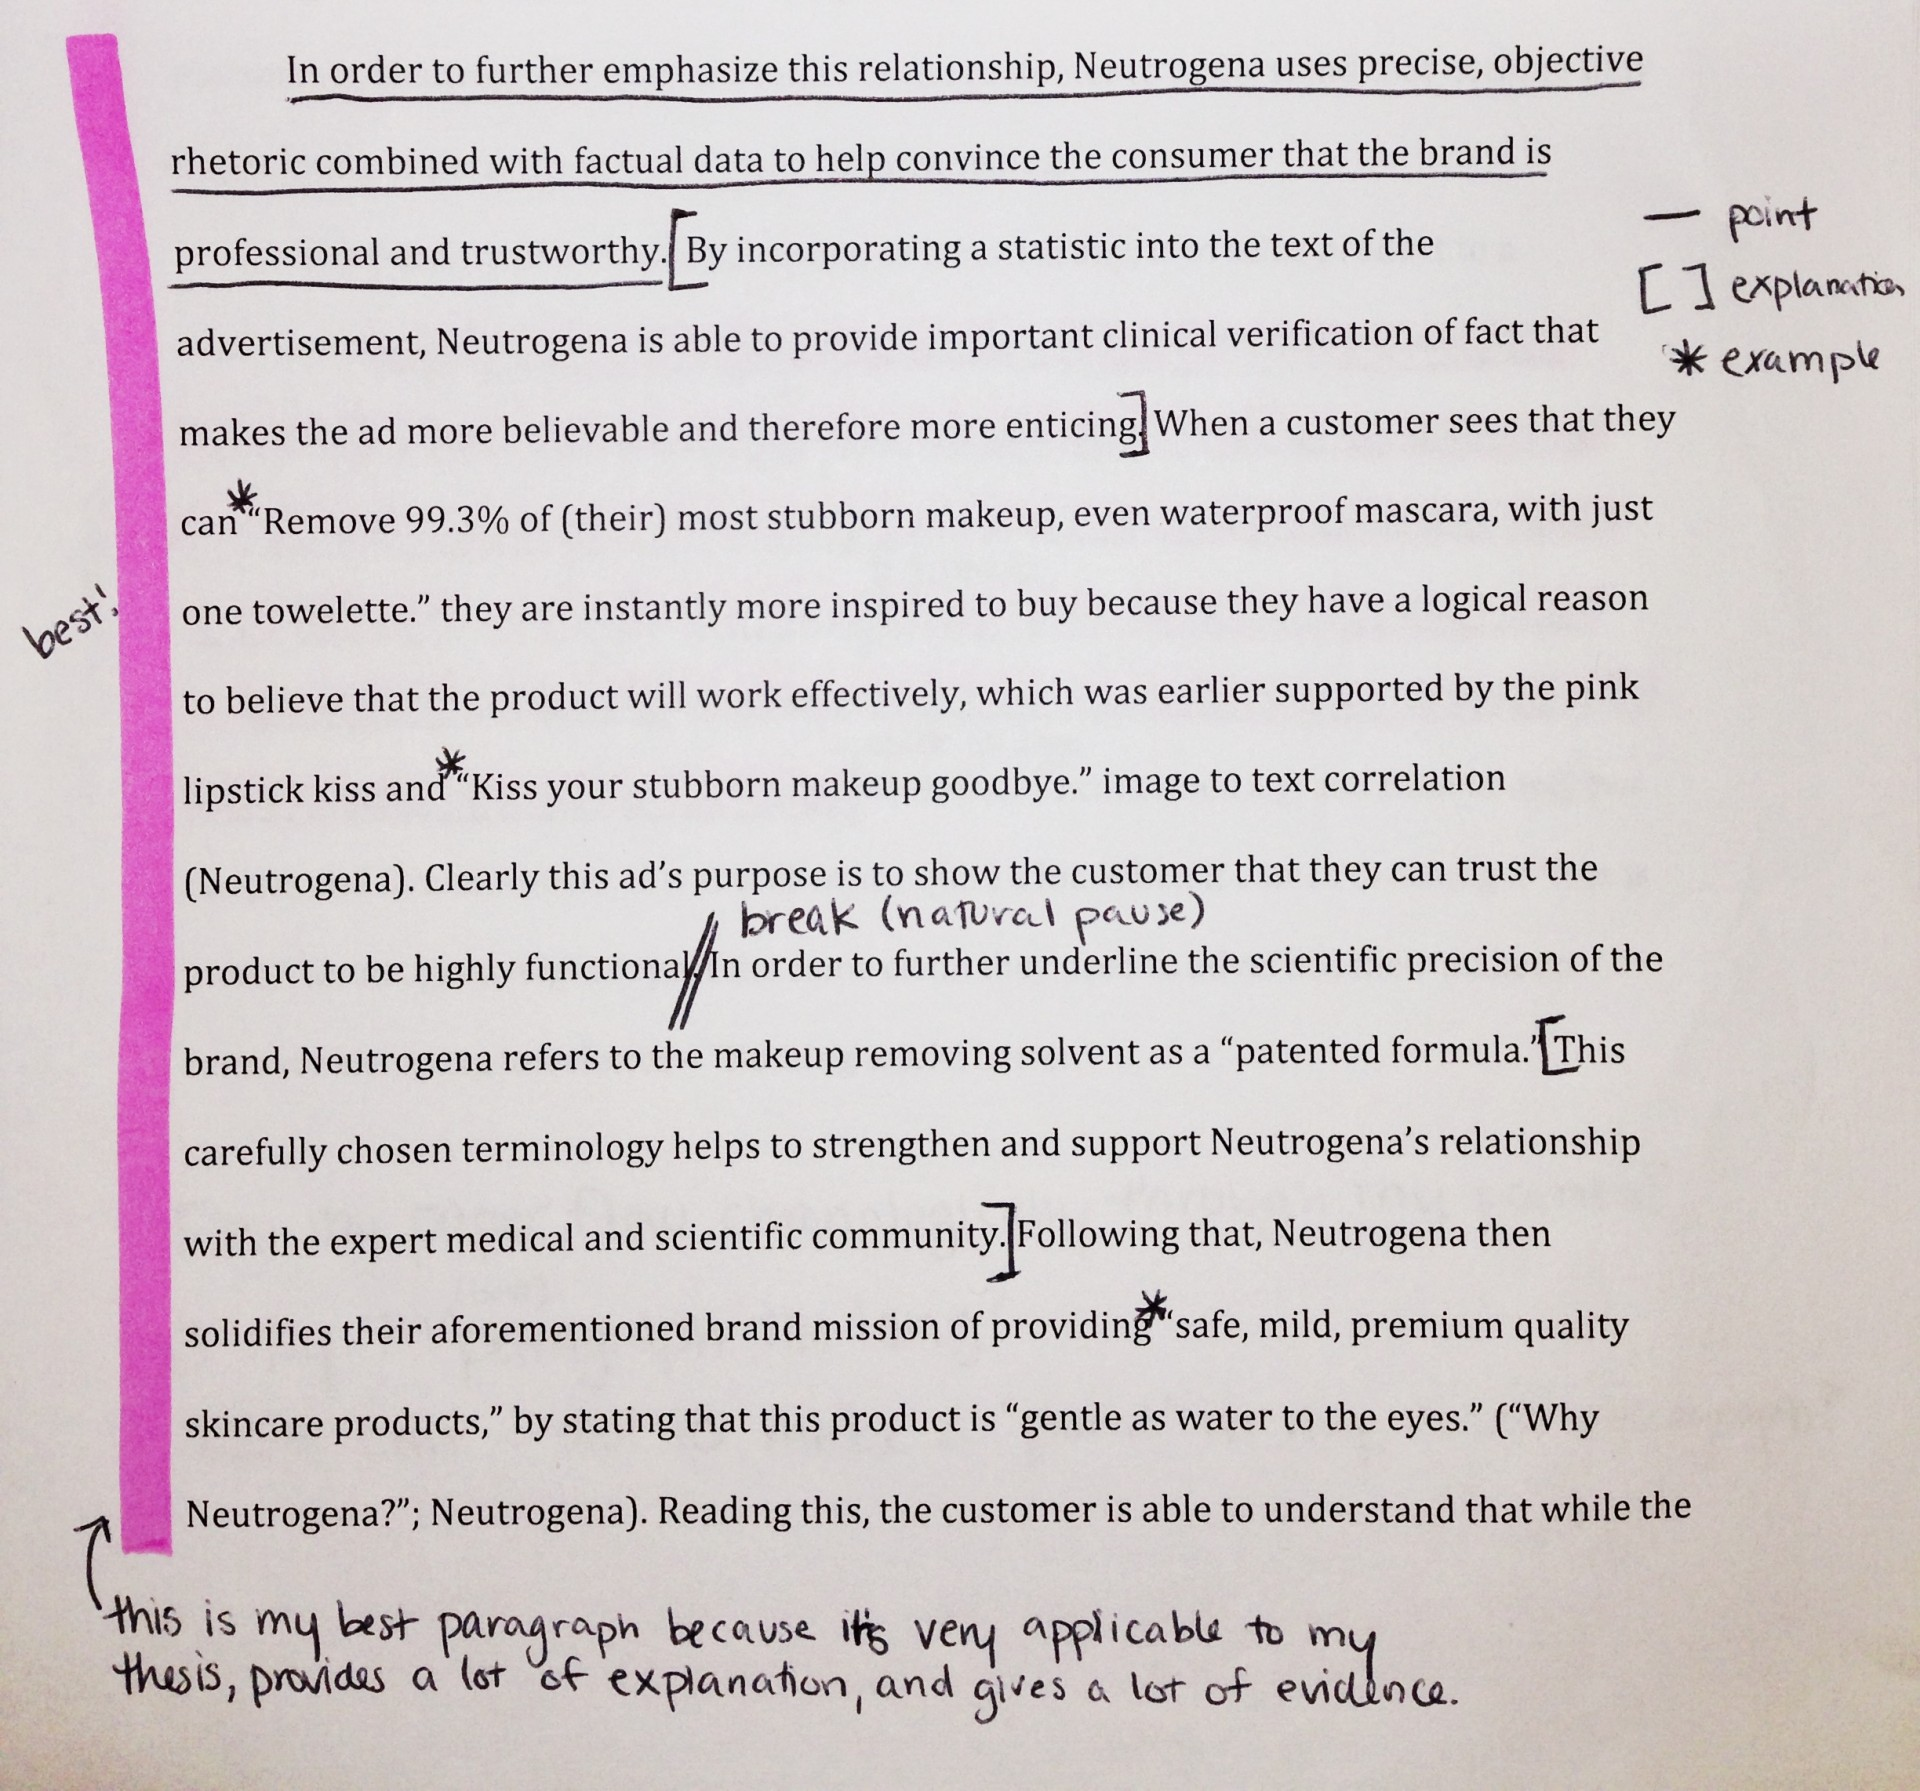 020 Conclusion Example For Research Paper Distinguished Esl Rhetorical Analysis Essay Writing Site Phd Of Amazing Help 1920